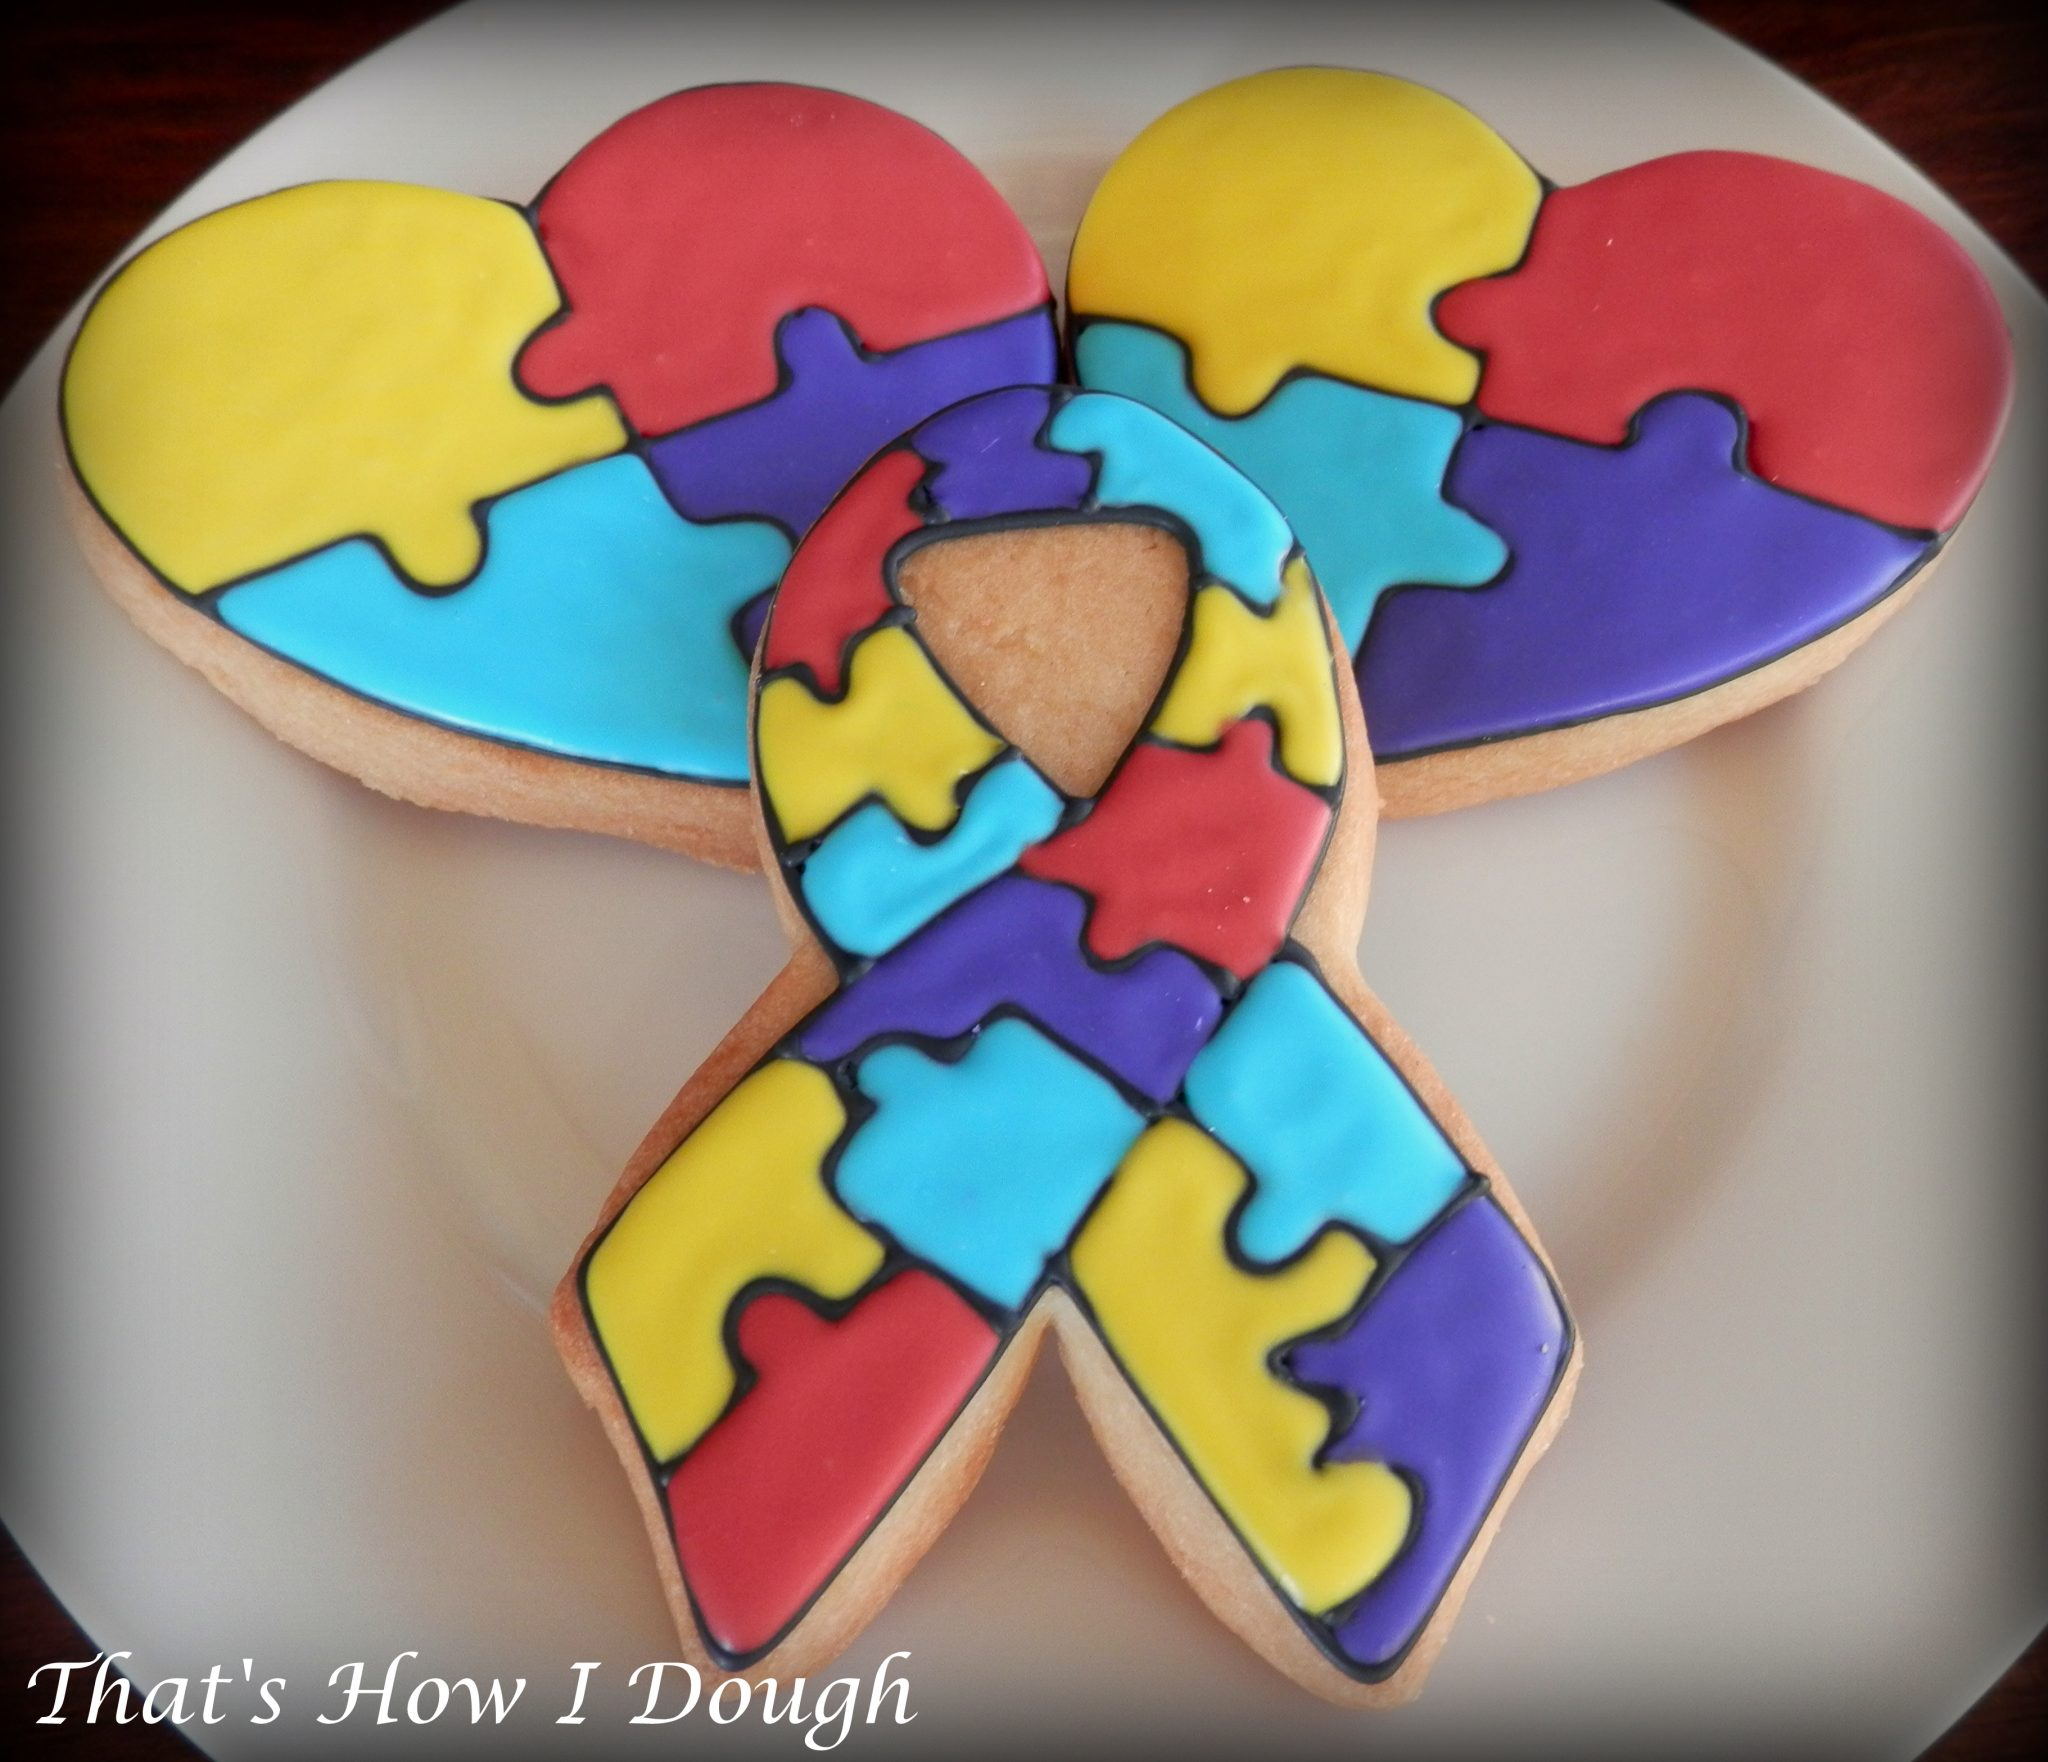 Autism awareness cookies thats how i dough autism puzzle pieces are used as a symbol to reflect the complexity and mystery of the autism spectrum disorderdue to the fact different people are biocorpaavc